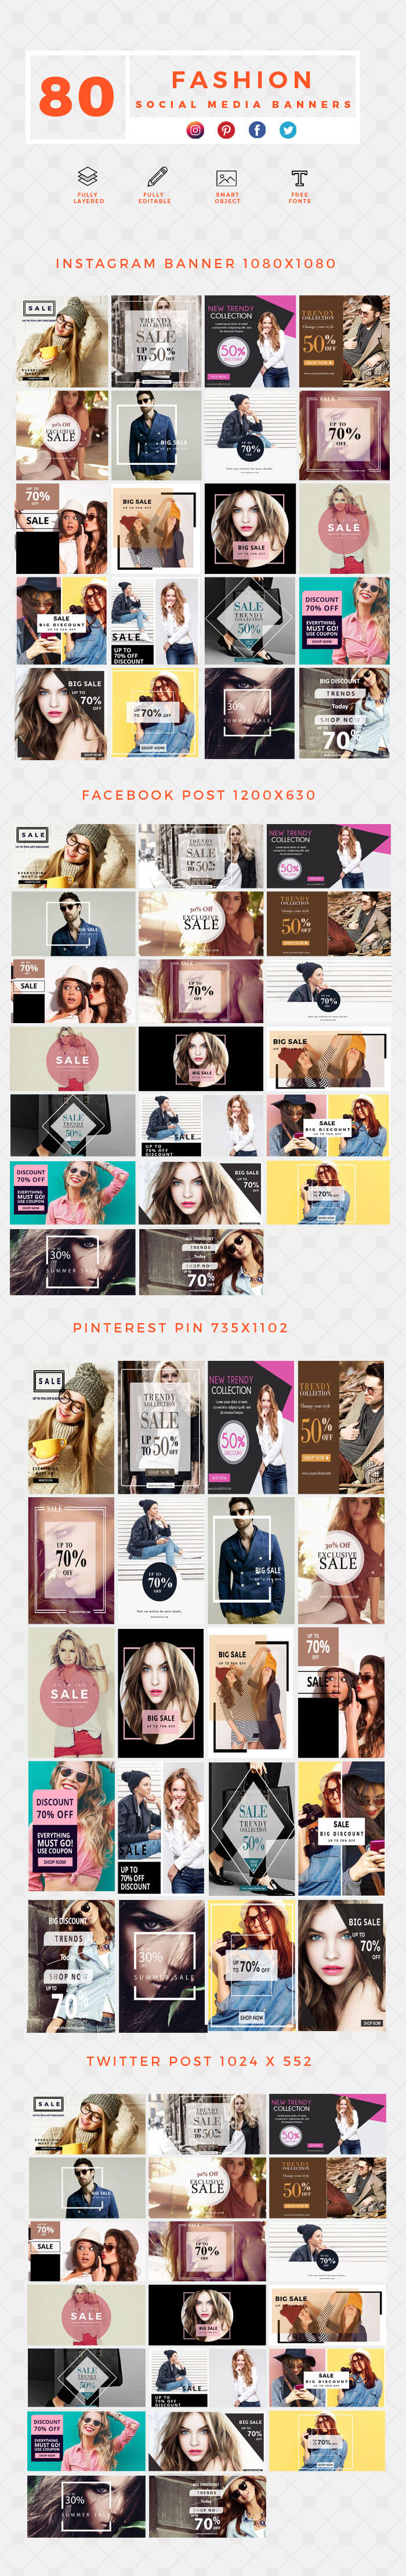 640 Social Media Banner Templates Bundle PREVIEW-FASHION